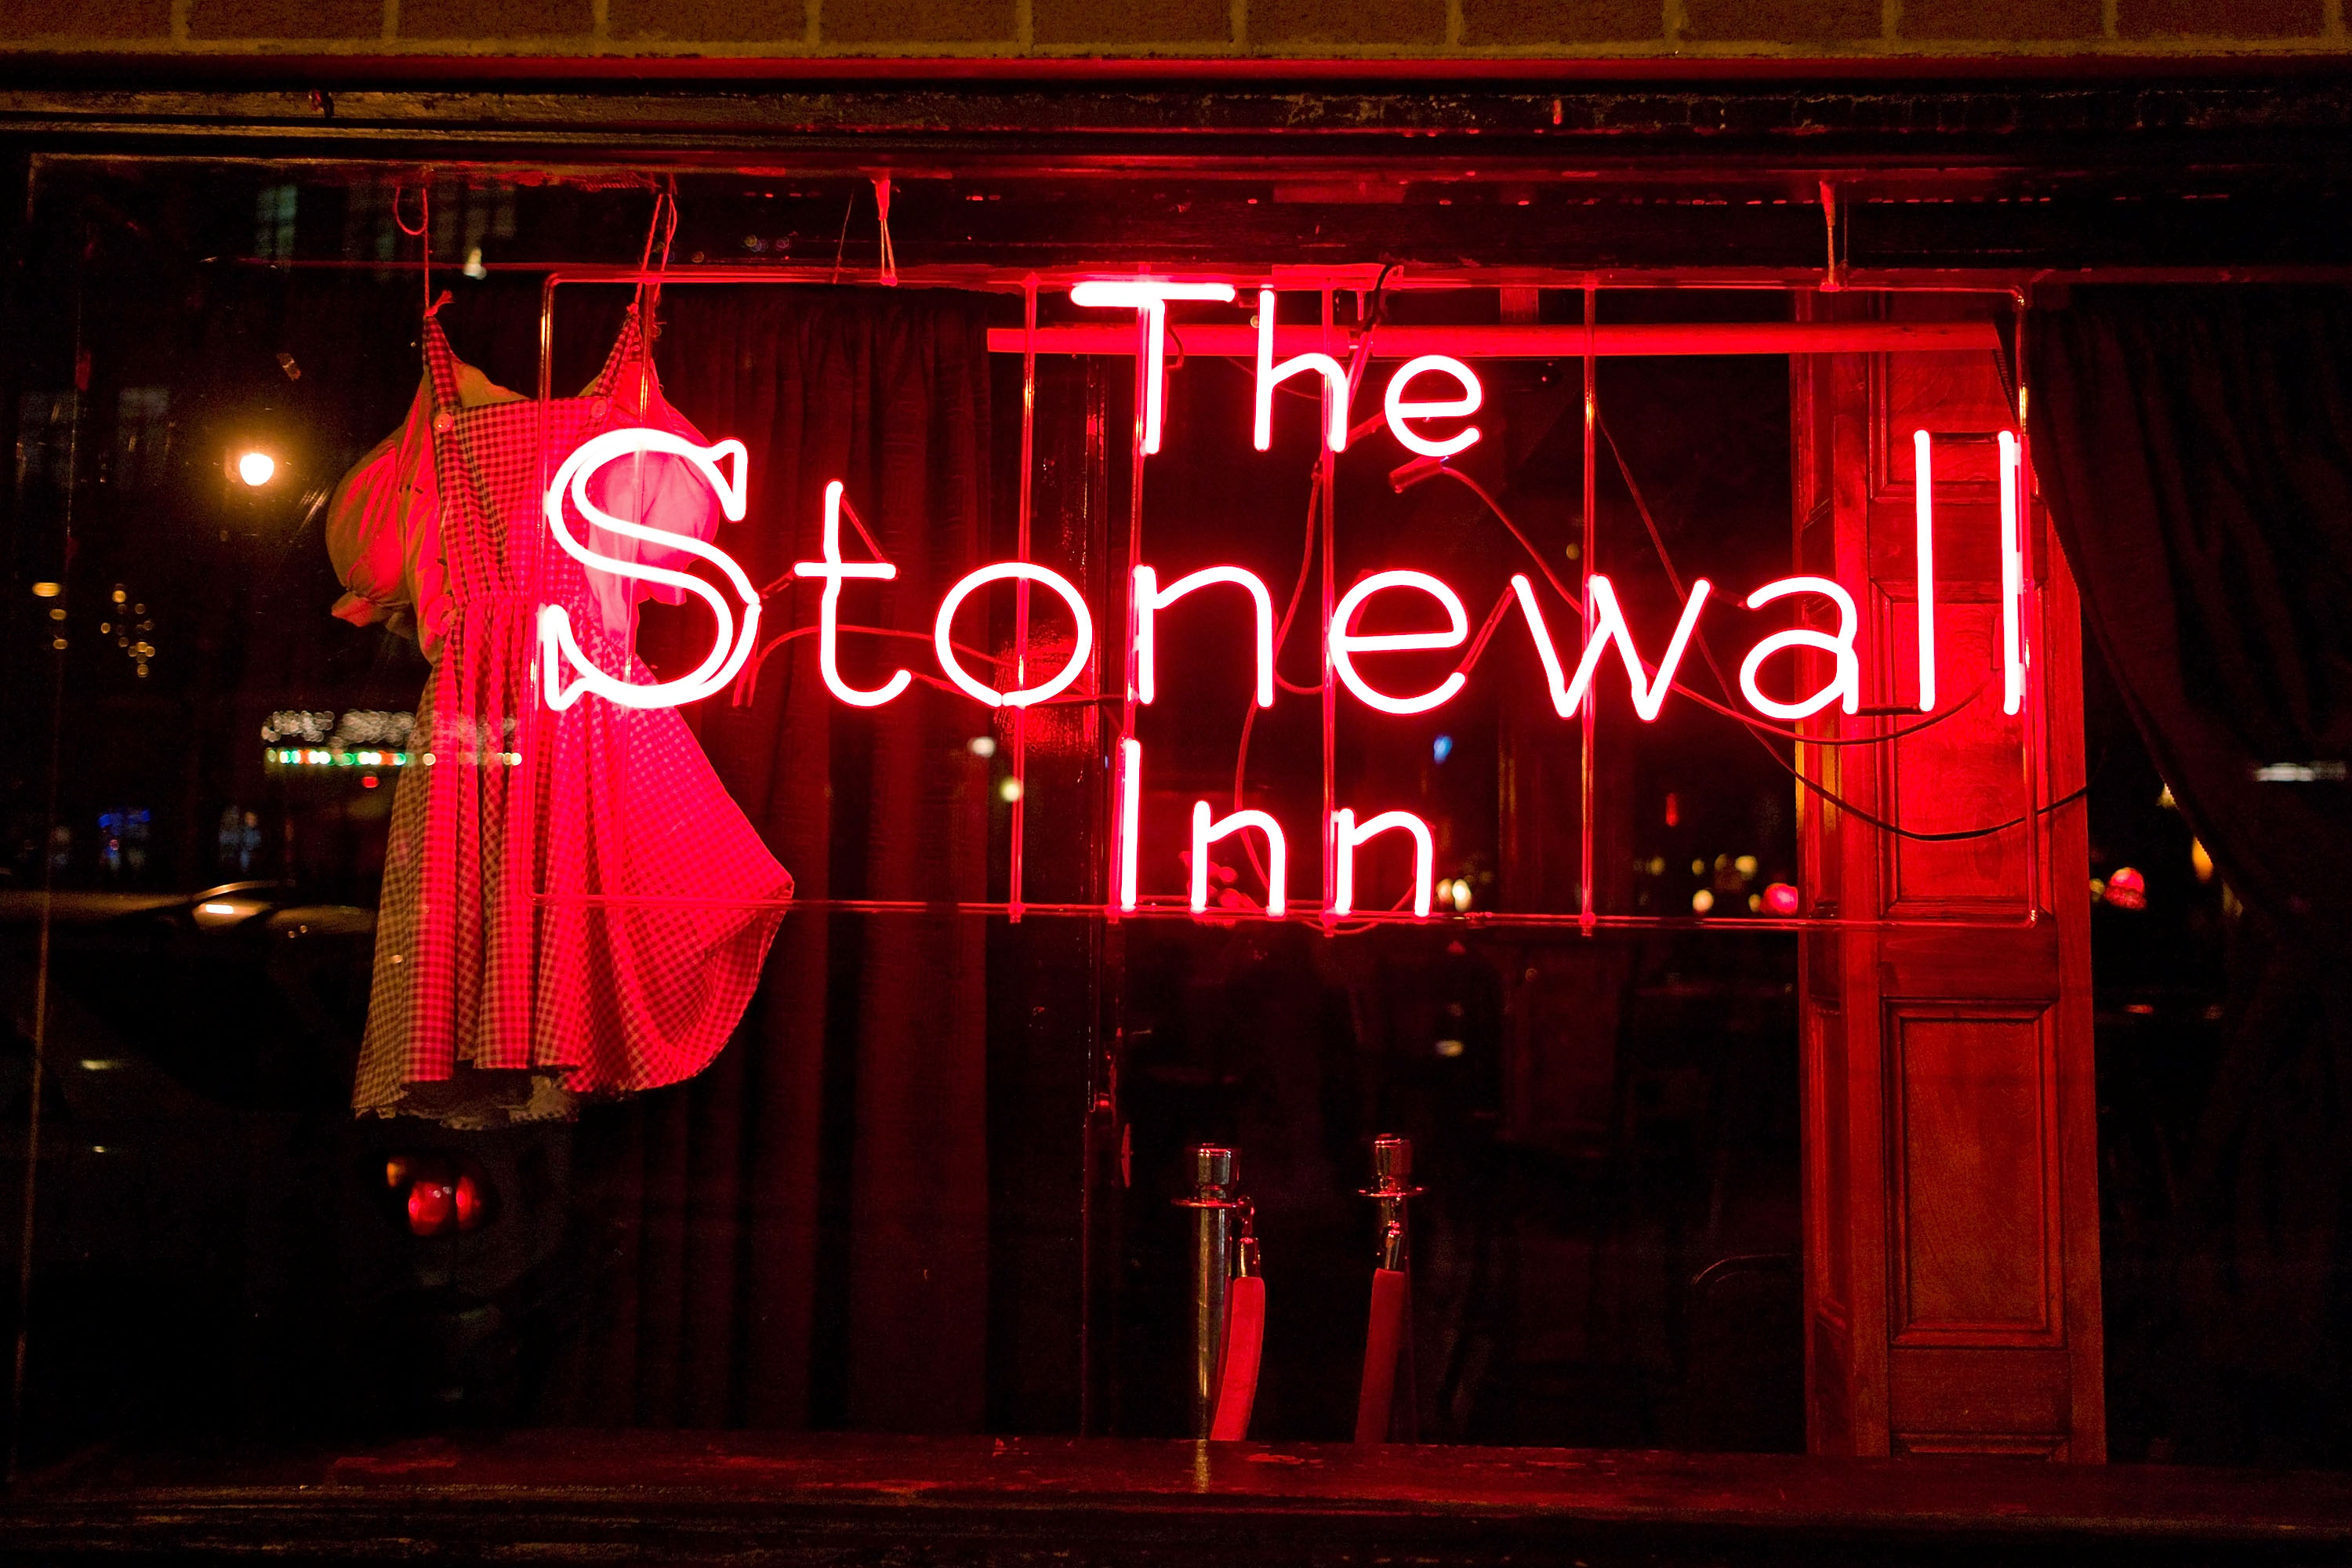 <> at the Stonewall Inn on March 2, 2011 in New York City.